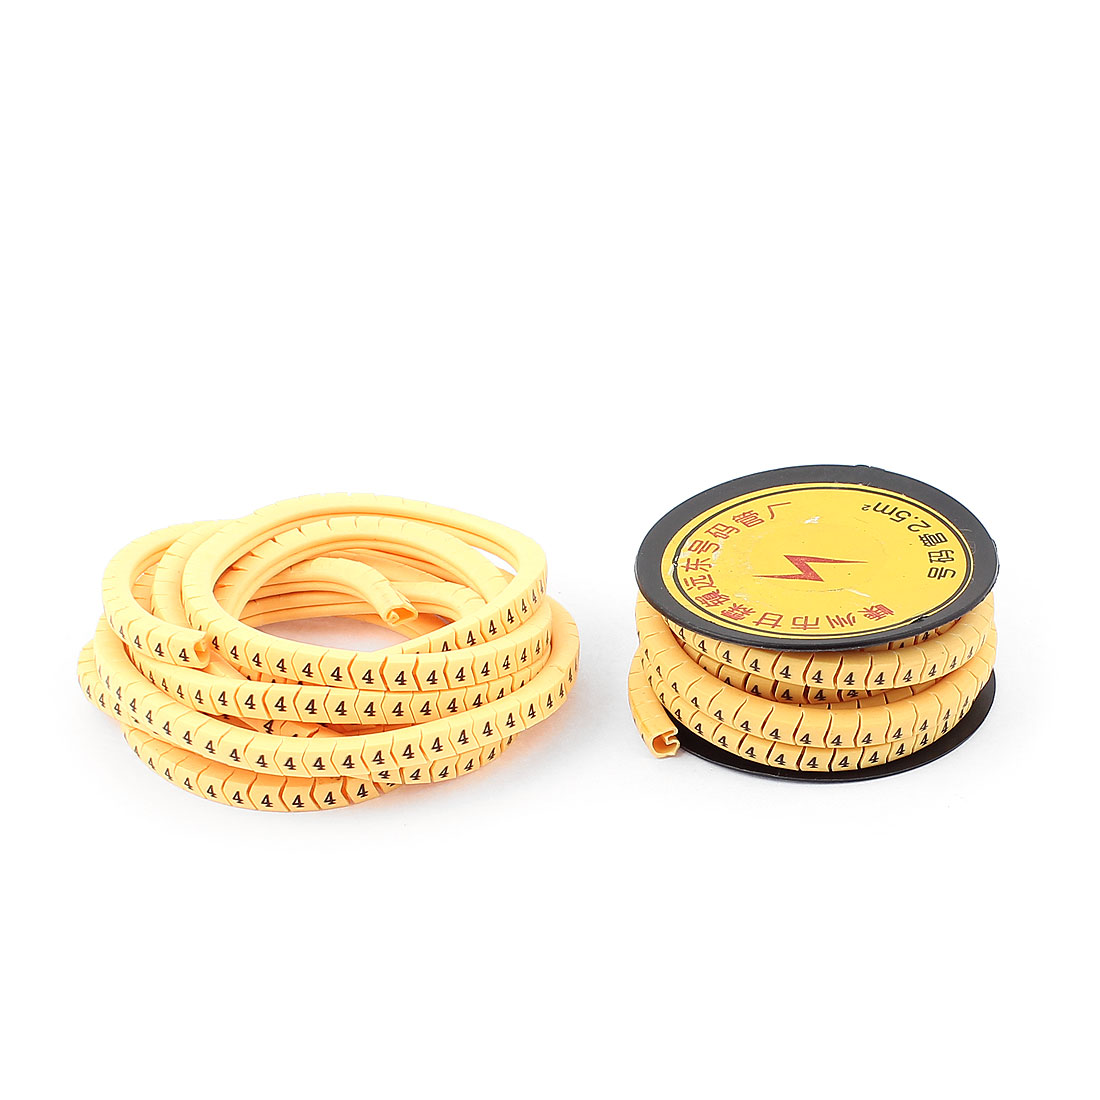 2pcs Flexible PVC Arabic Numerals 4 Printed Cable Marker Tag Label Reel Roll for 2.5mm2 Wire